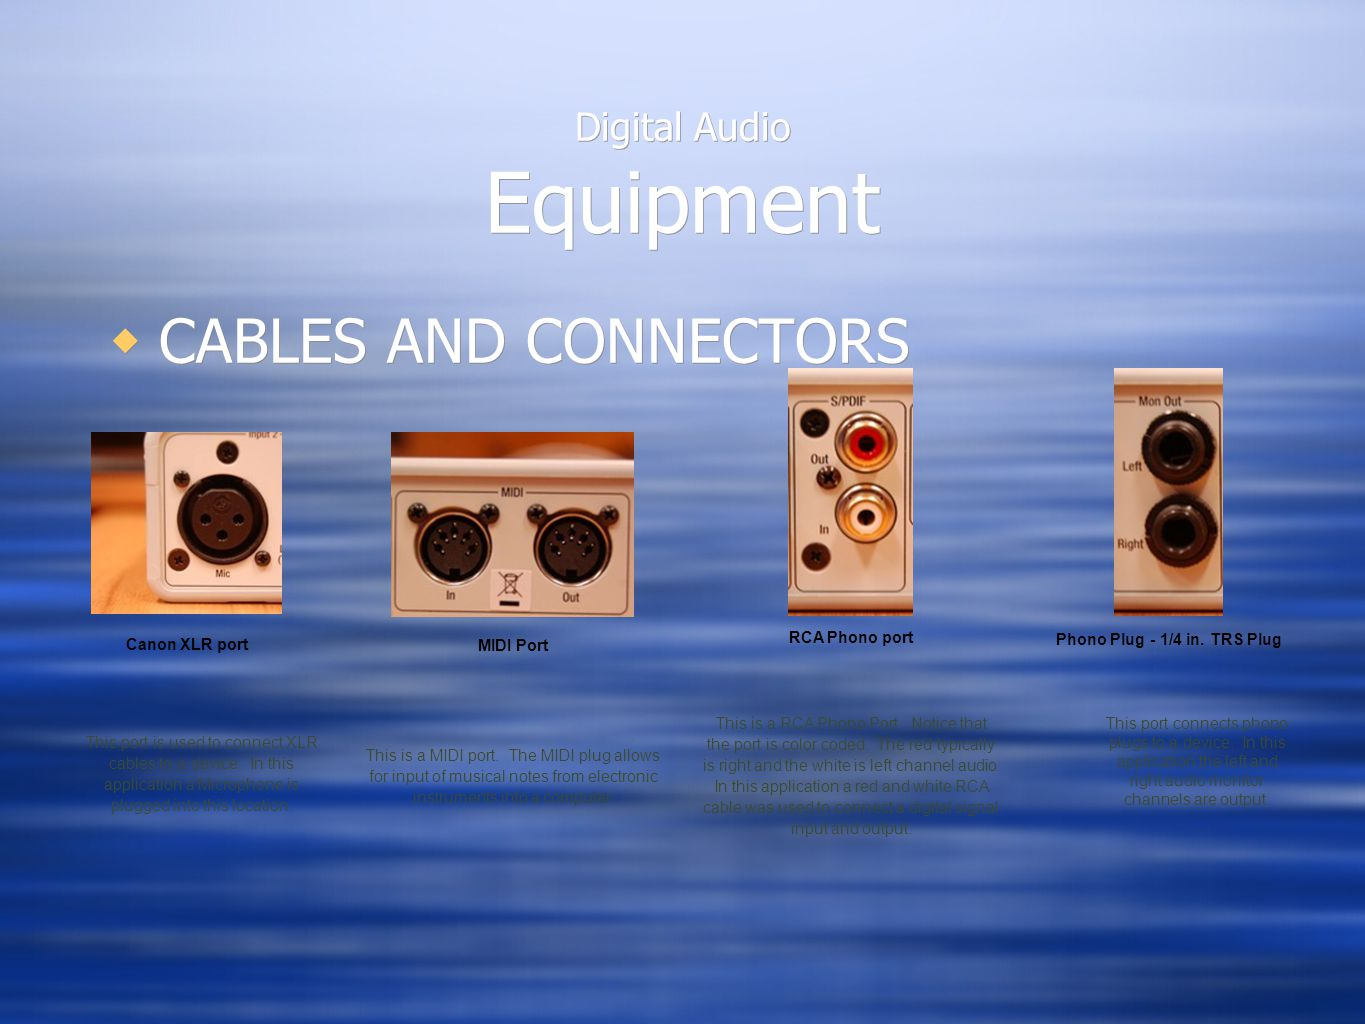 Digital Audio Equipment  CABLES AND CONNECTORS Canon XLR port This port is used to connect XLR cables to a device.